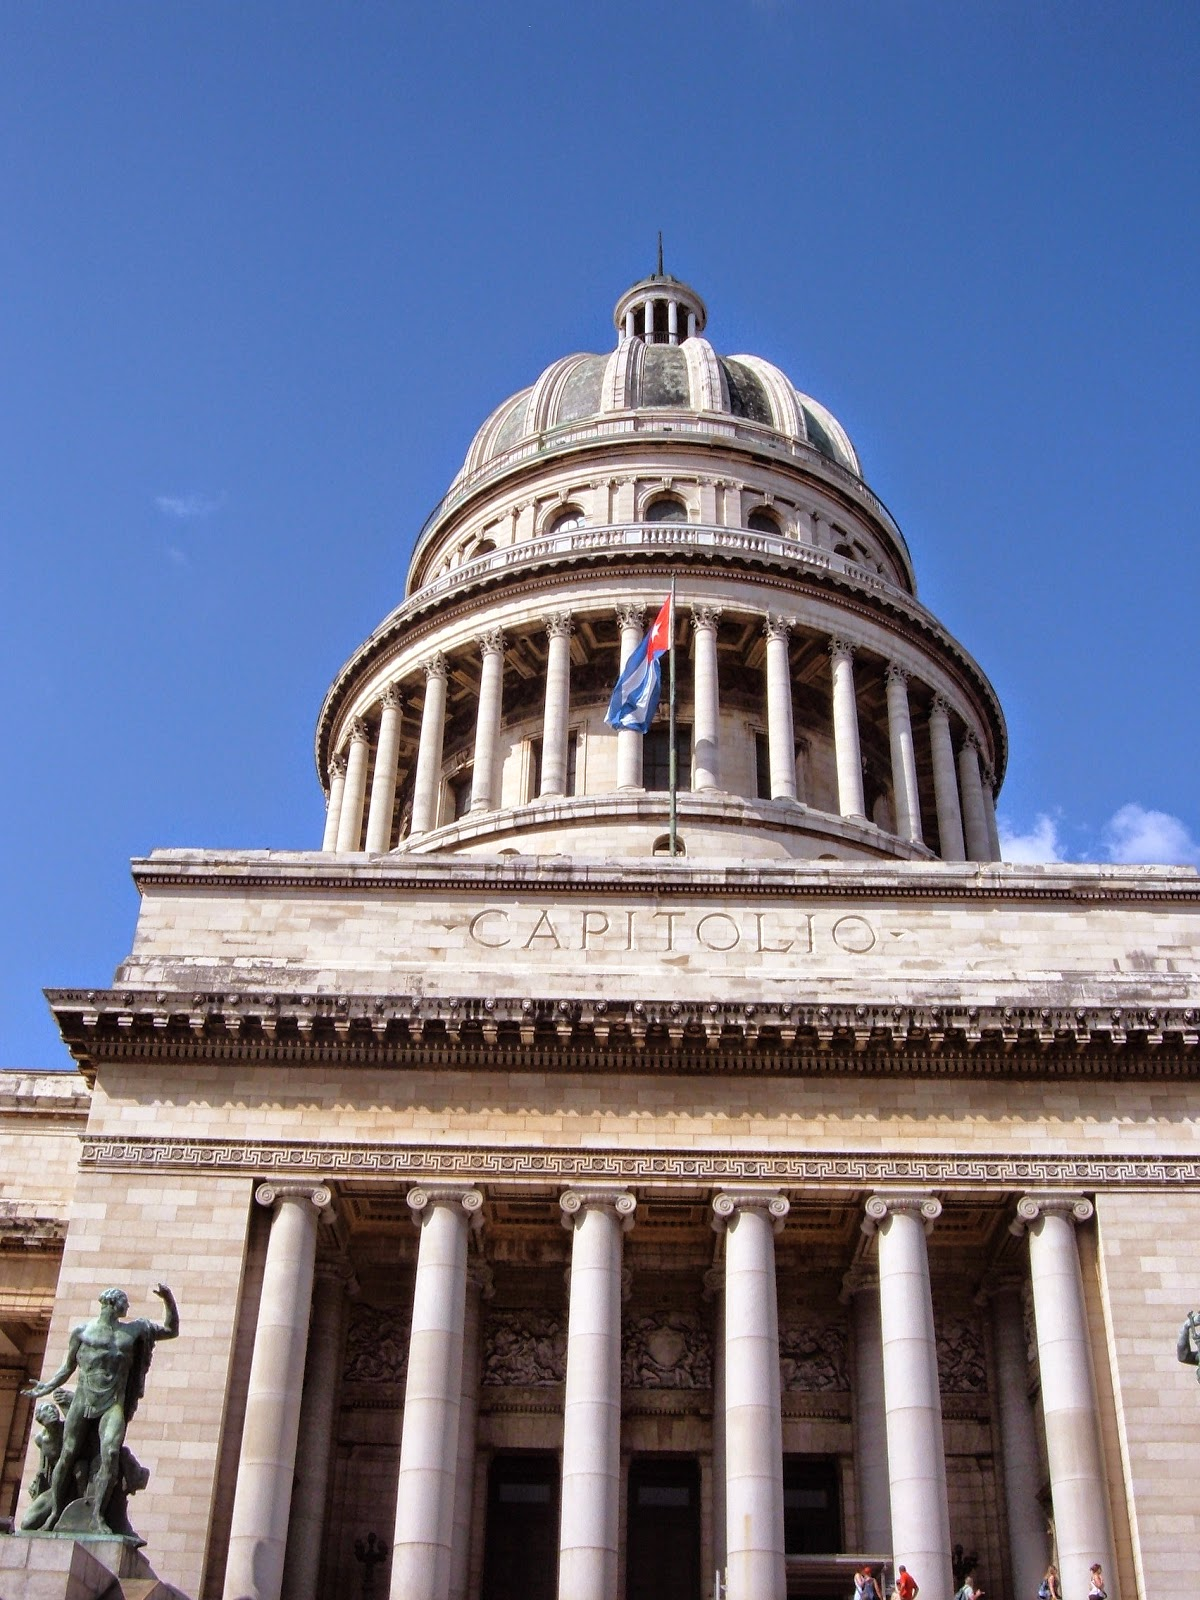 travel 2 the caribbean blog travel photo essay part 2 national capital building havana